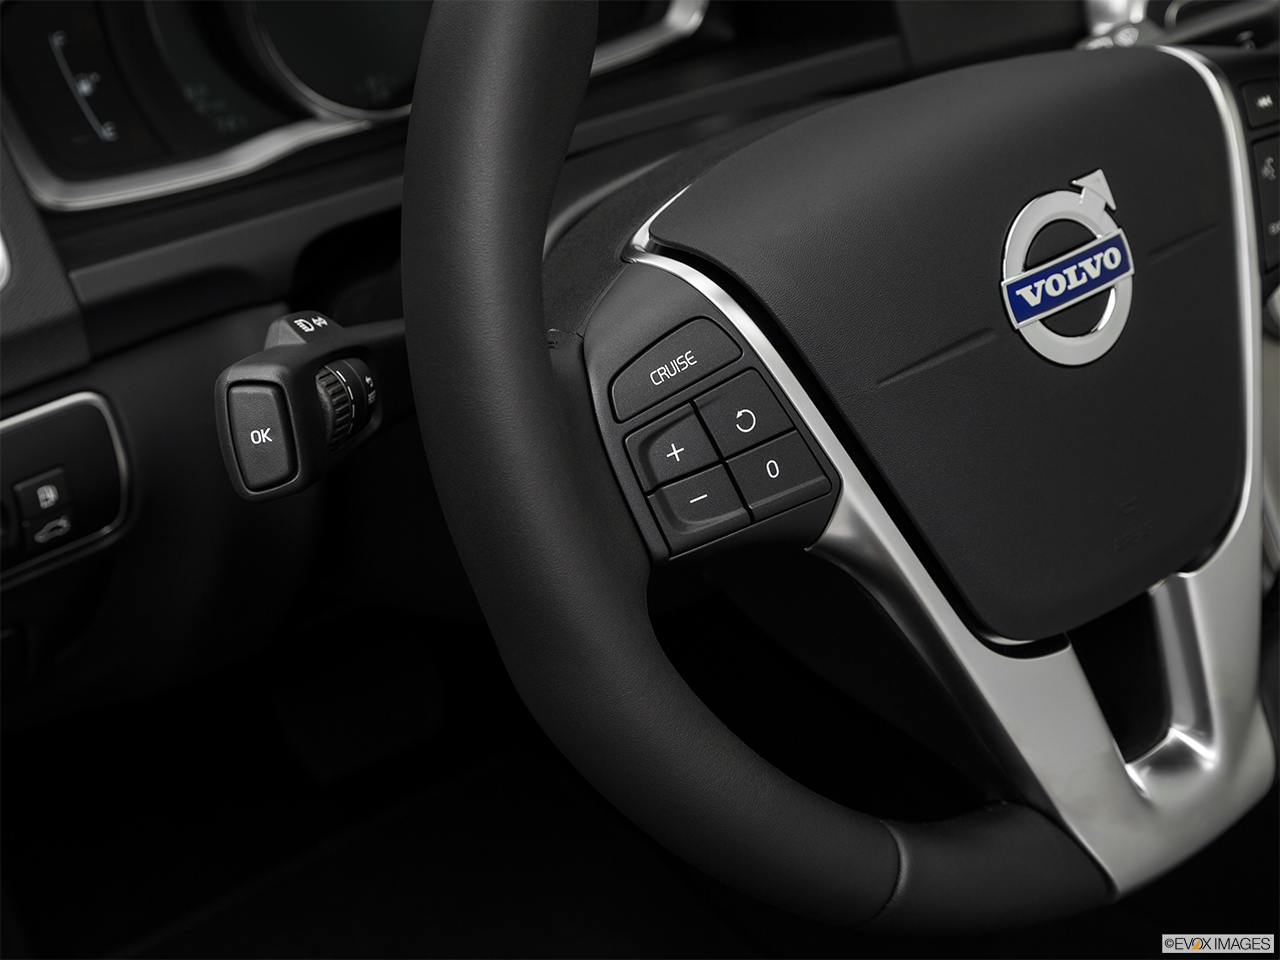 2018 Volvo V60 Cross Country T5 AWD Steering Wheel Controls (Left Side)